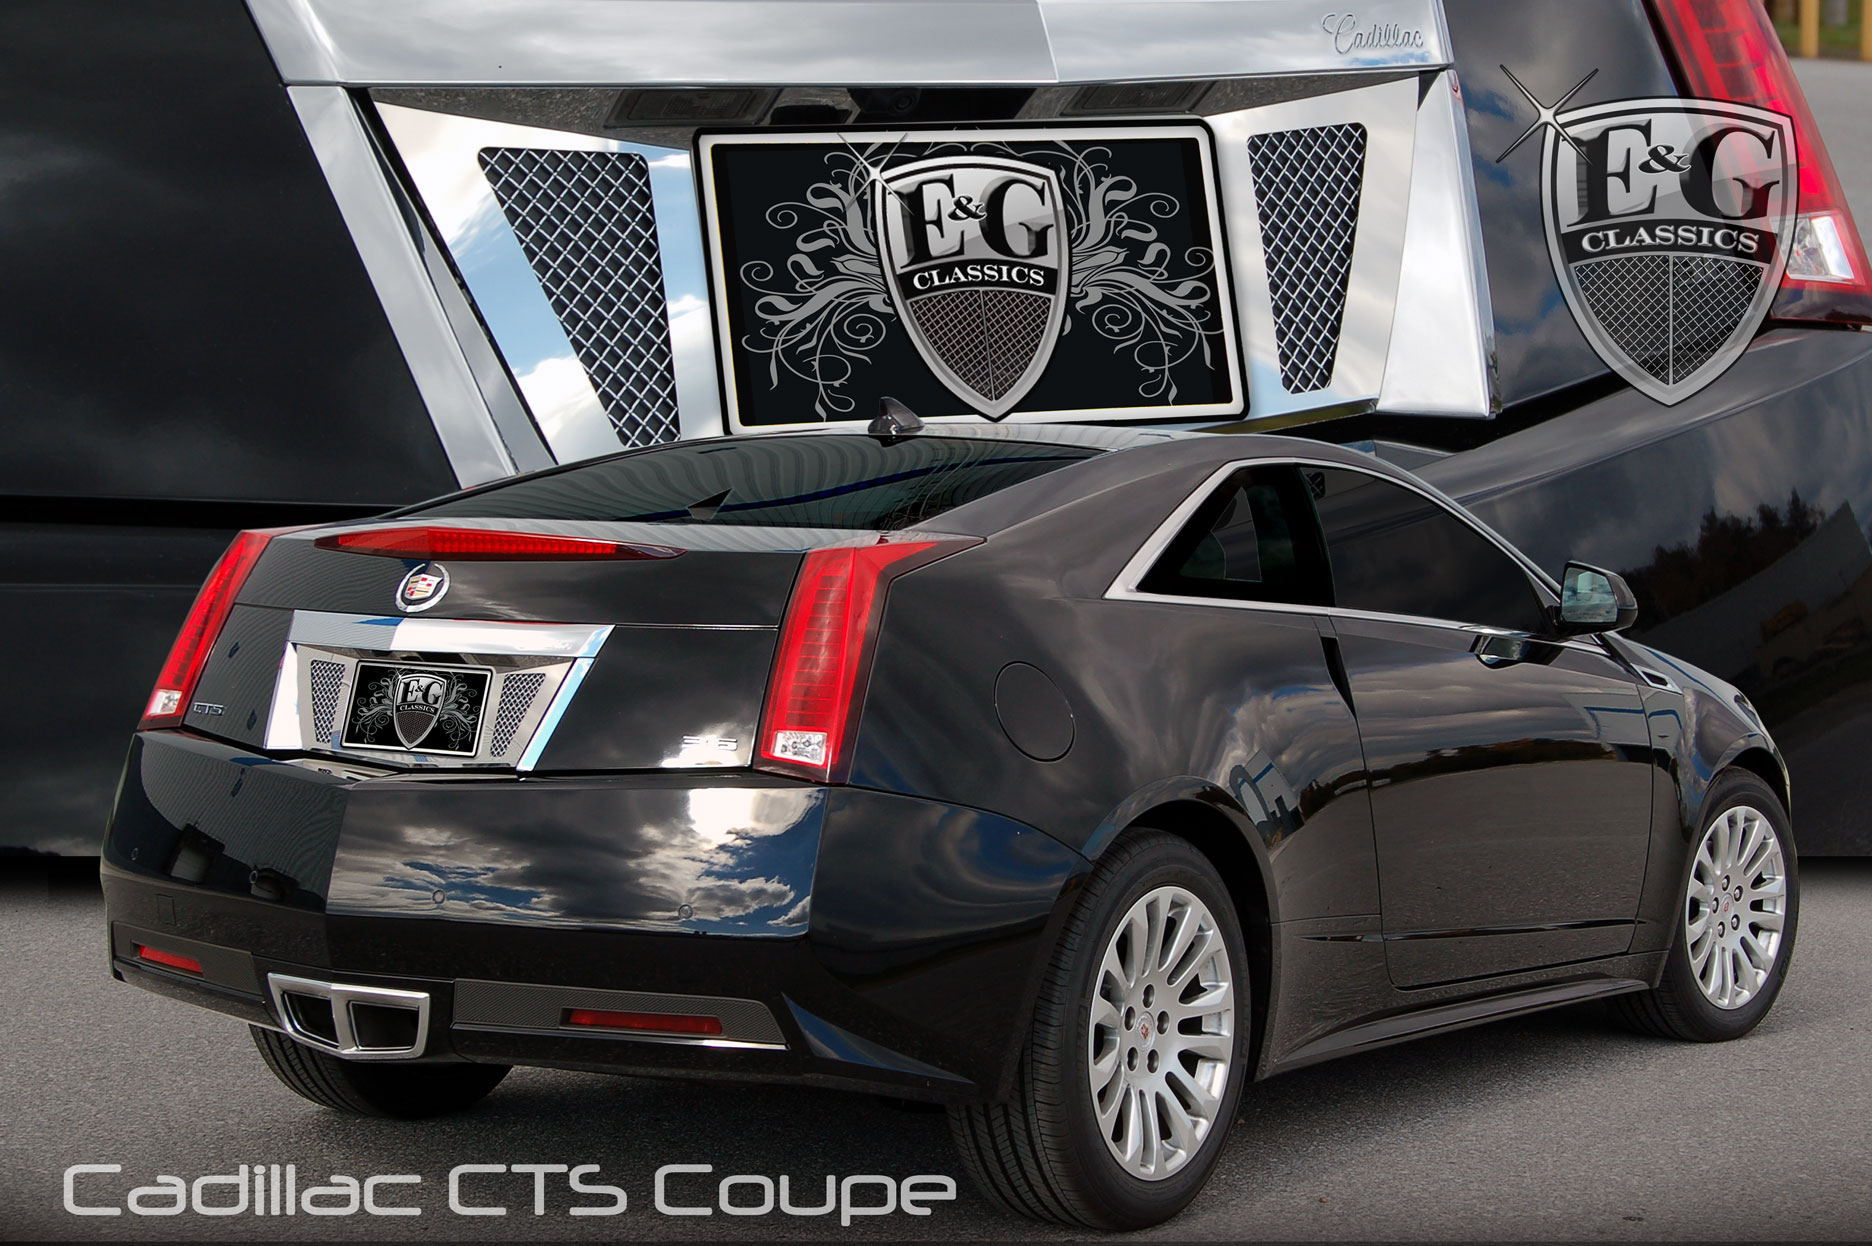 E G Classics Cadillac Cts Grille Wing Egx Body Kit